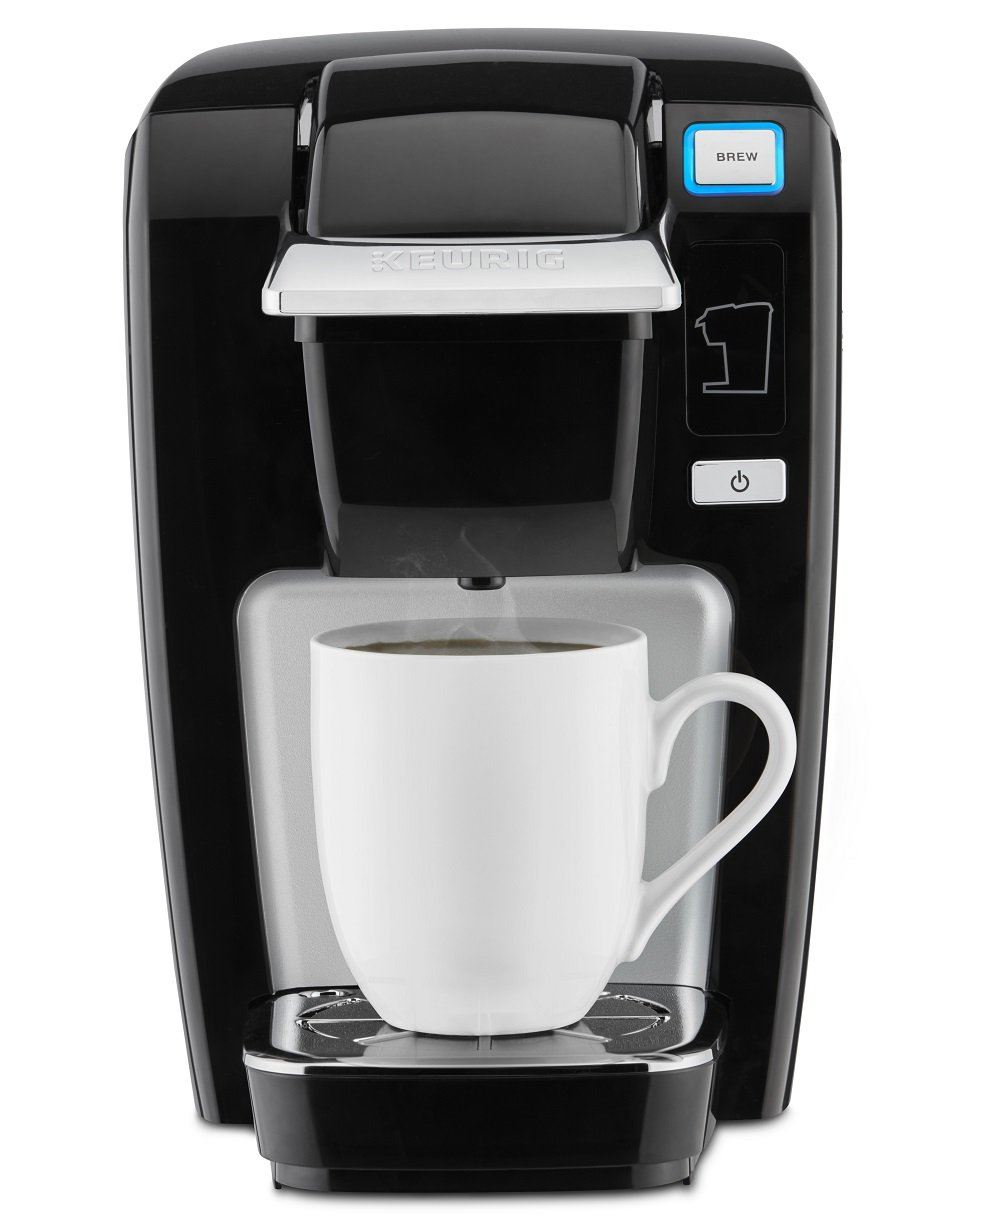 The Best Keurig Coffee Maker Top Rating Reviews 4